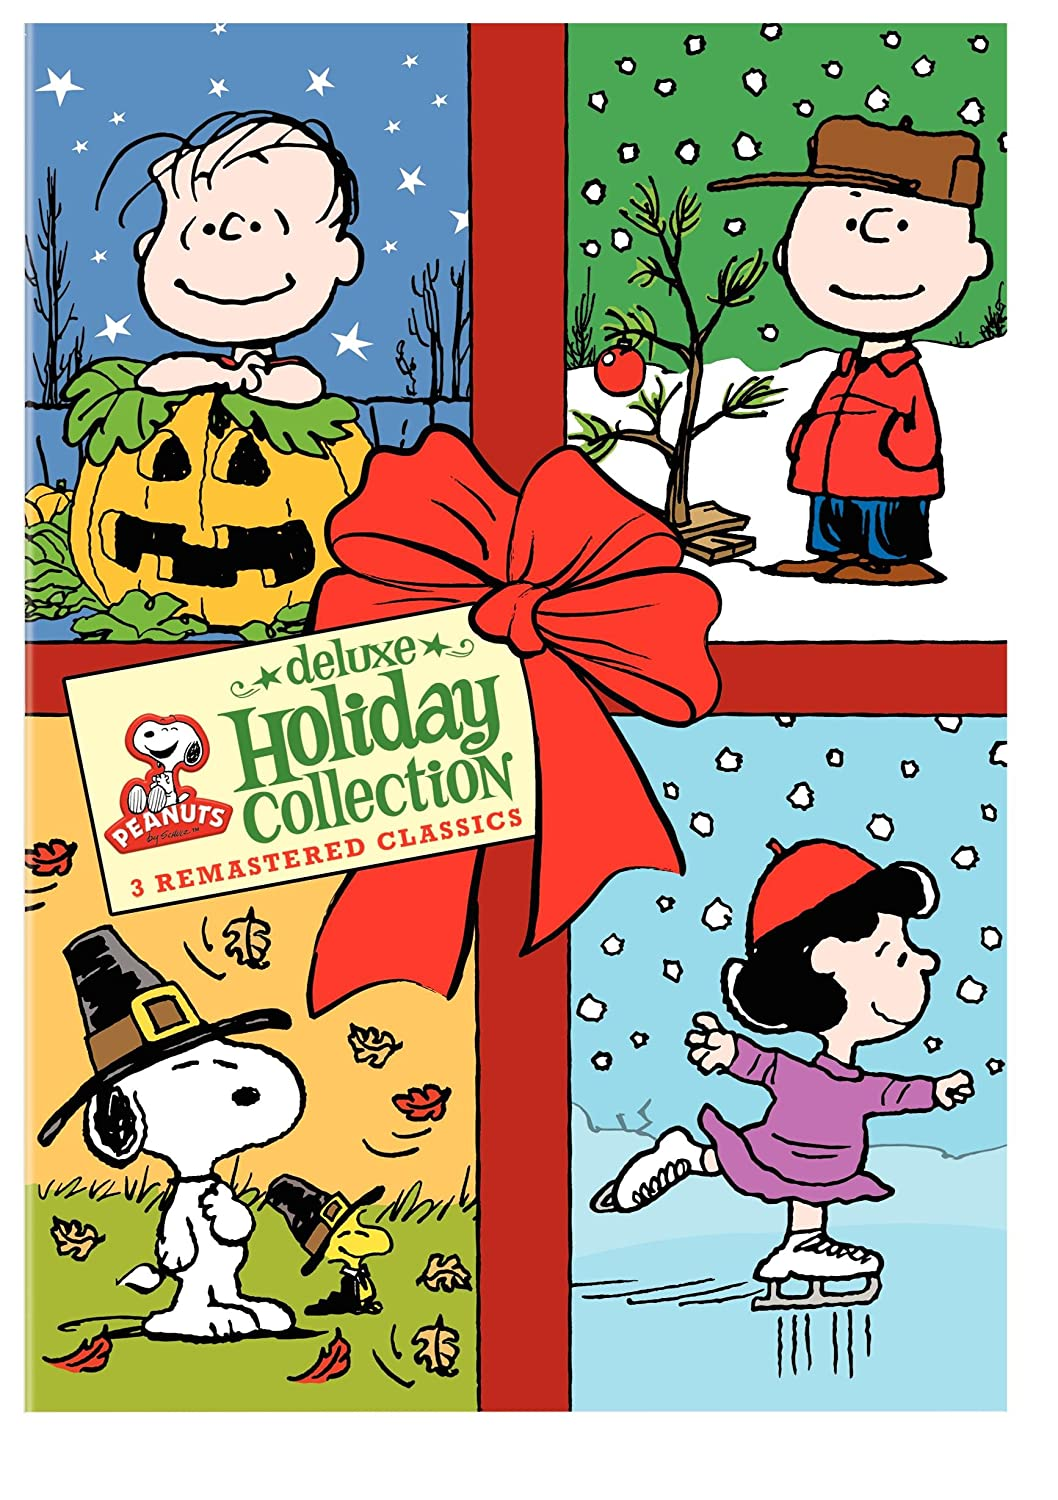 amazoncom peanuts holiday collection its the great pumpkin charlie brown a charlie brown thanksgiving a charlie brown christmas movies tv - Charlie Brown Halloween Cartoon